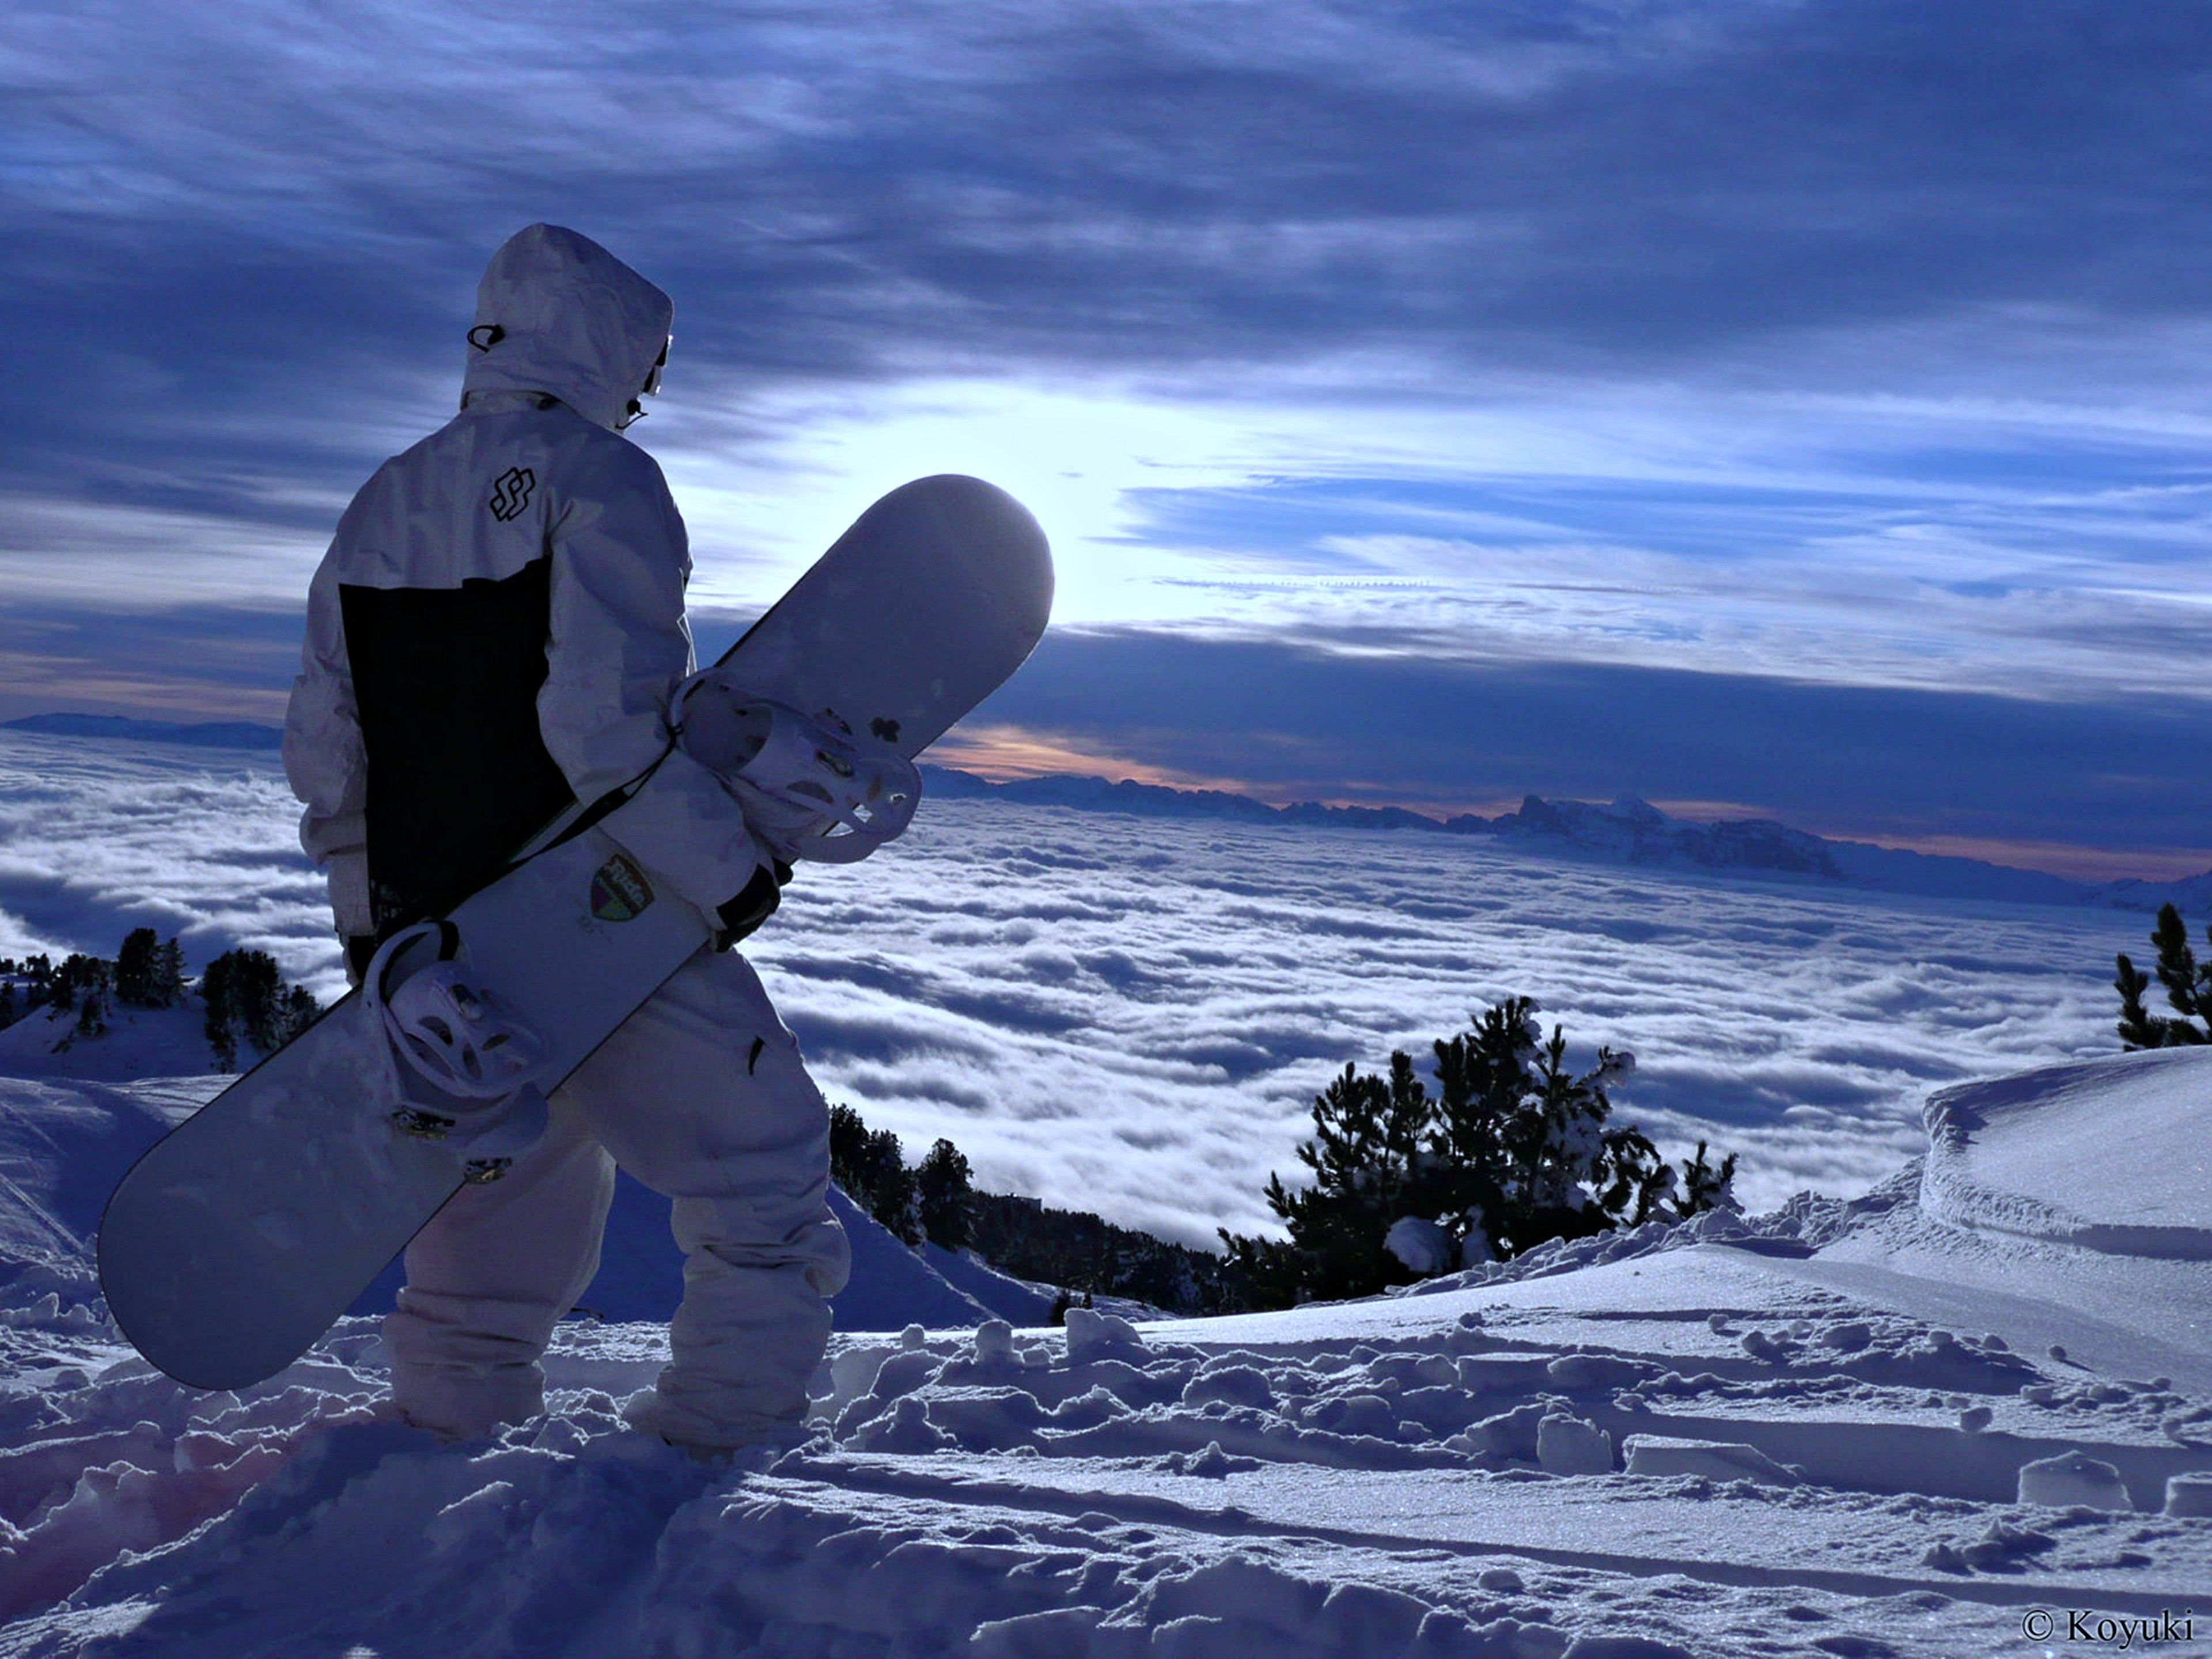 Extreme Snowboarding Wallpaper: Extreme Snow Winter Sports Snowboarding Landscape